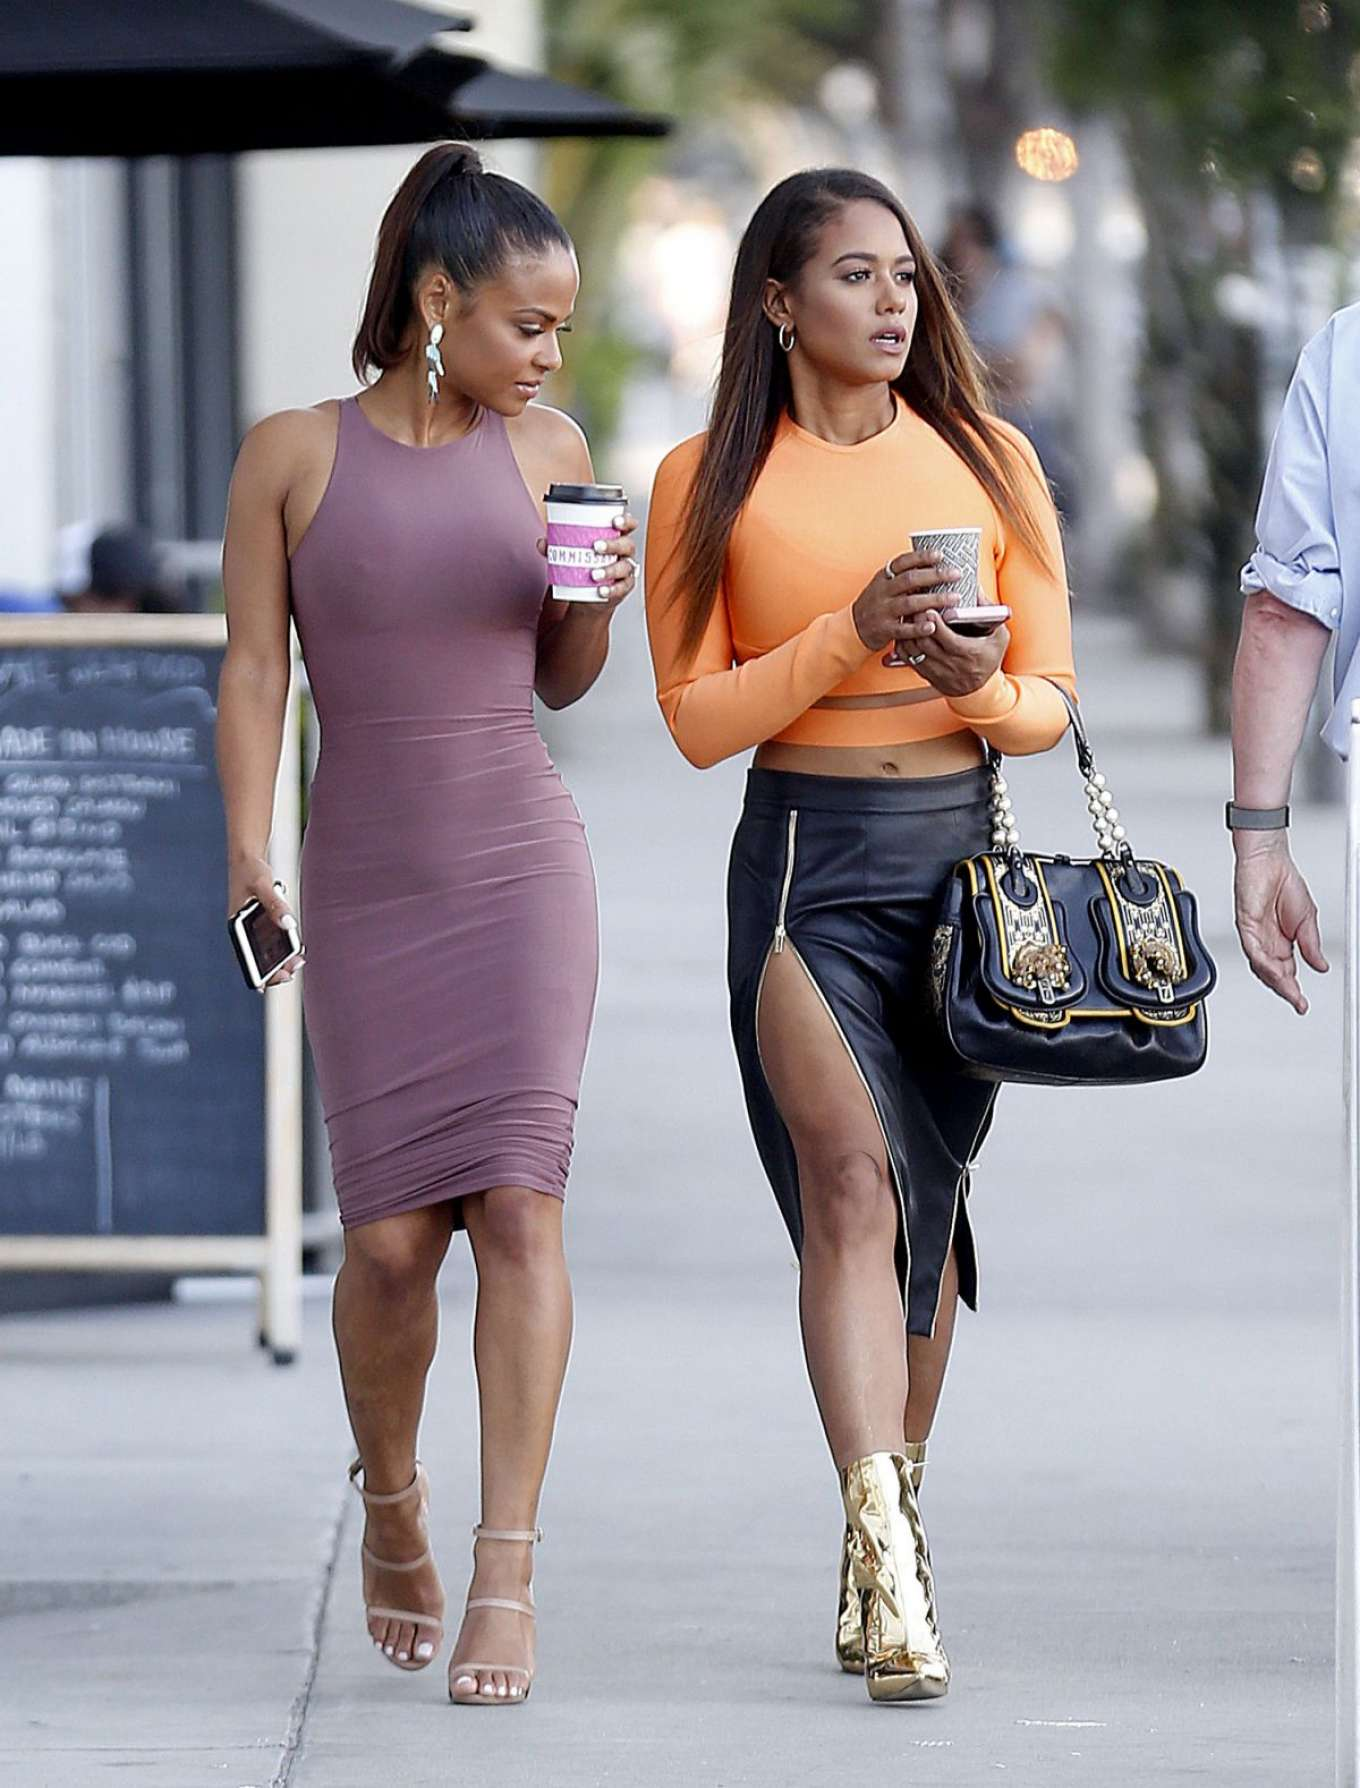 Discussion on this topic: Holly Karrol Clark, christina-milian/